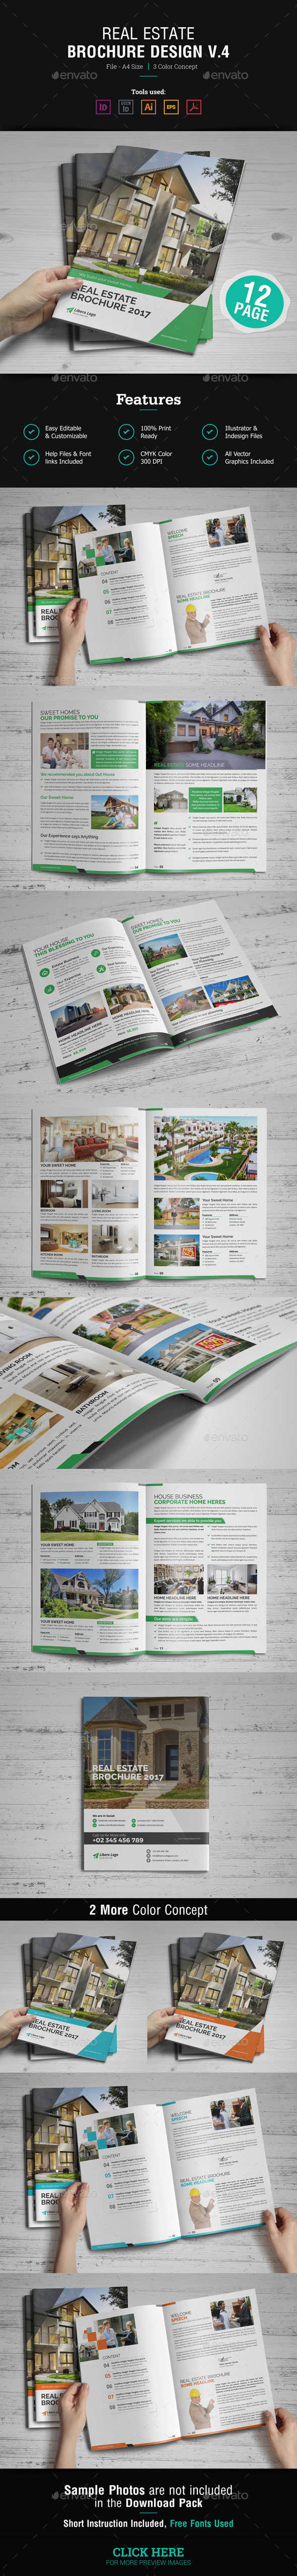 Real Estate Brochure Design v4 - Corporate Brochures